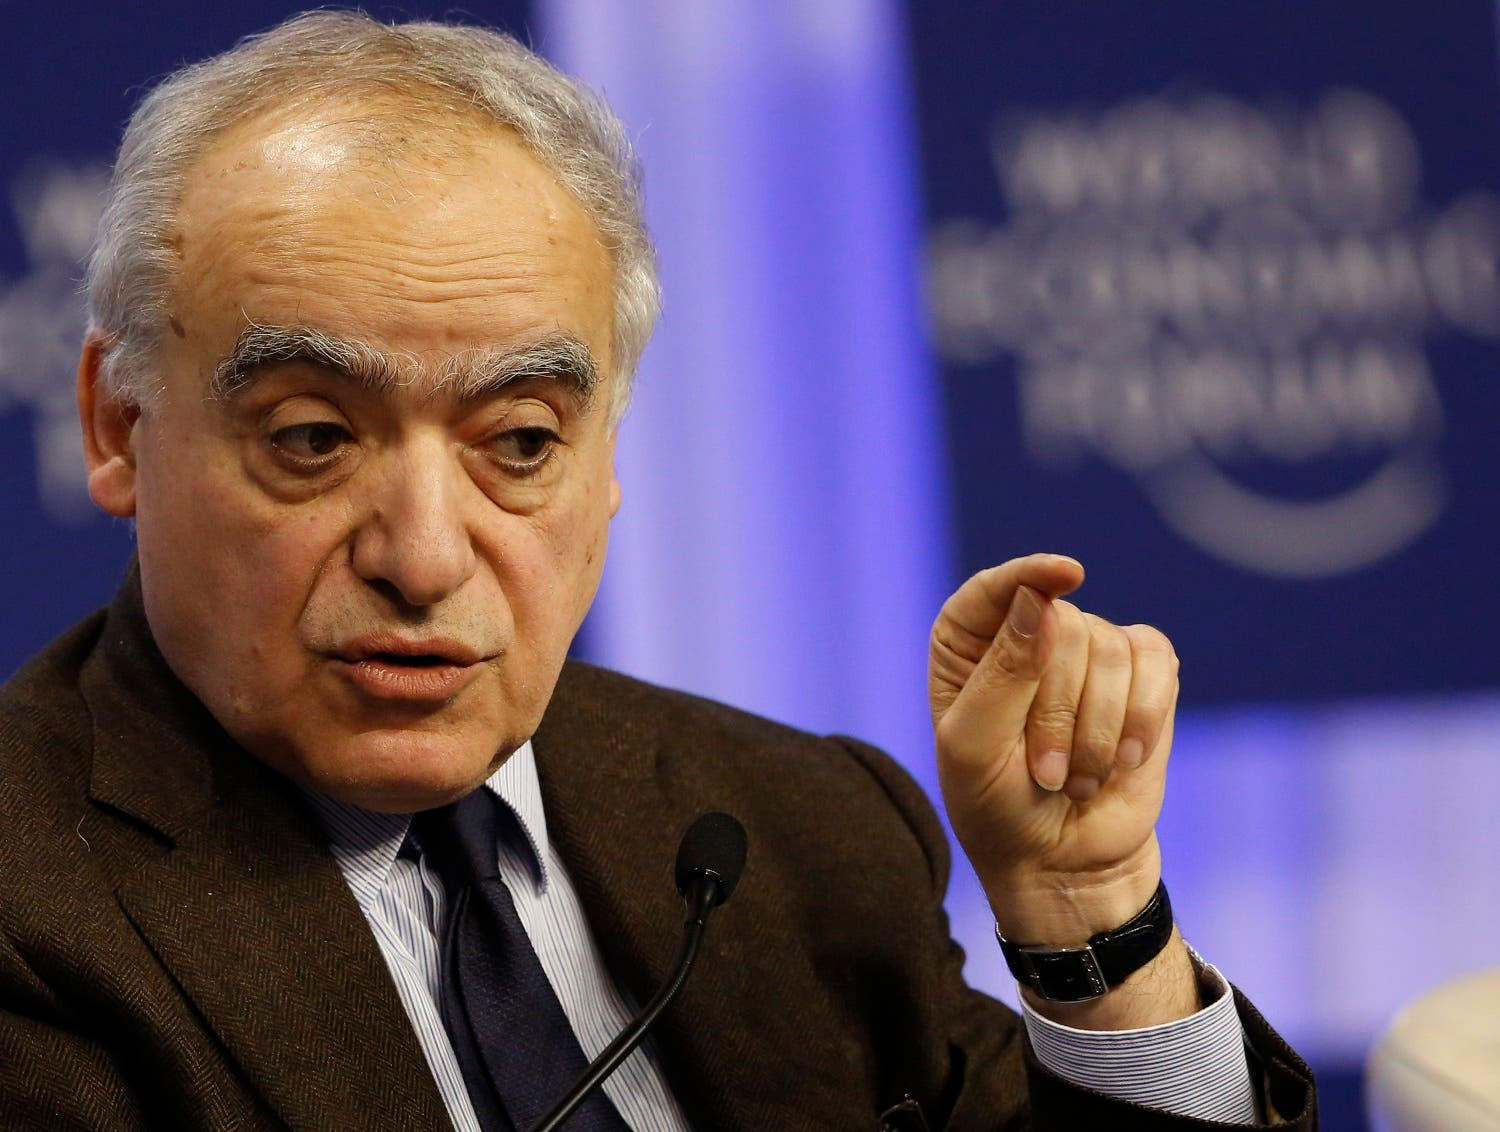 Guterres on Friday officially put forward Ghassan Salame, a professor of International Relations and Conflict Resolution at Sciences-Po in Paris. (Reuters)